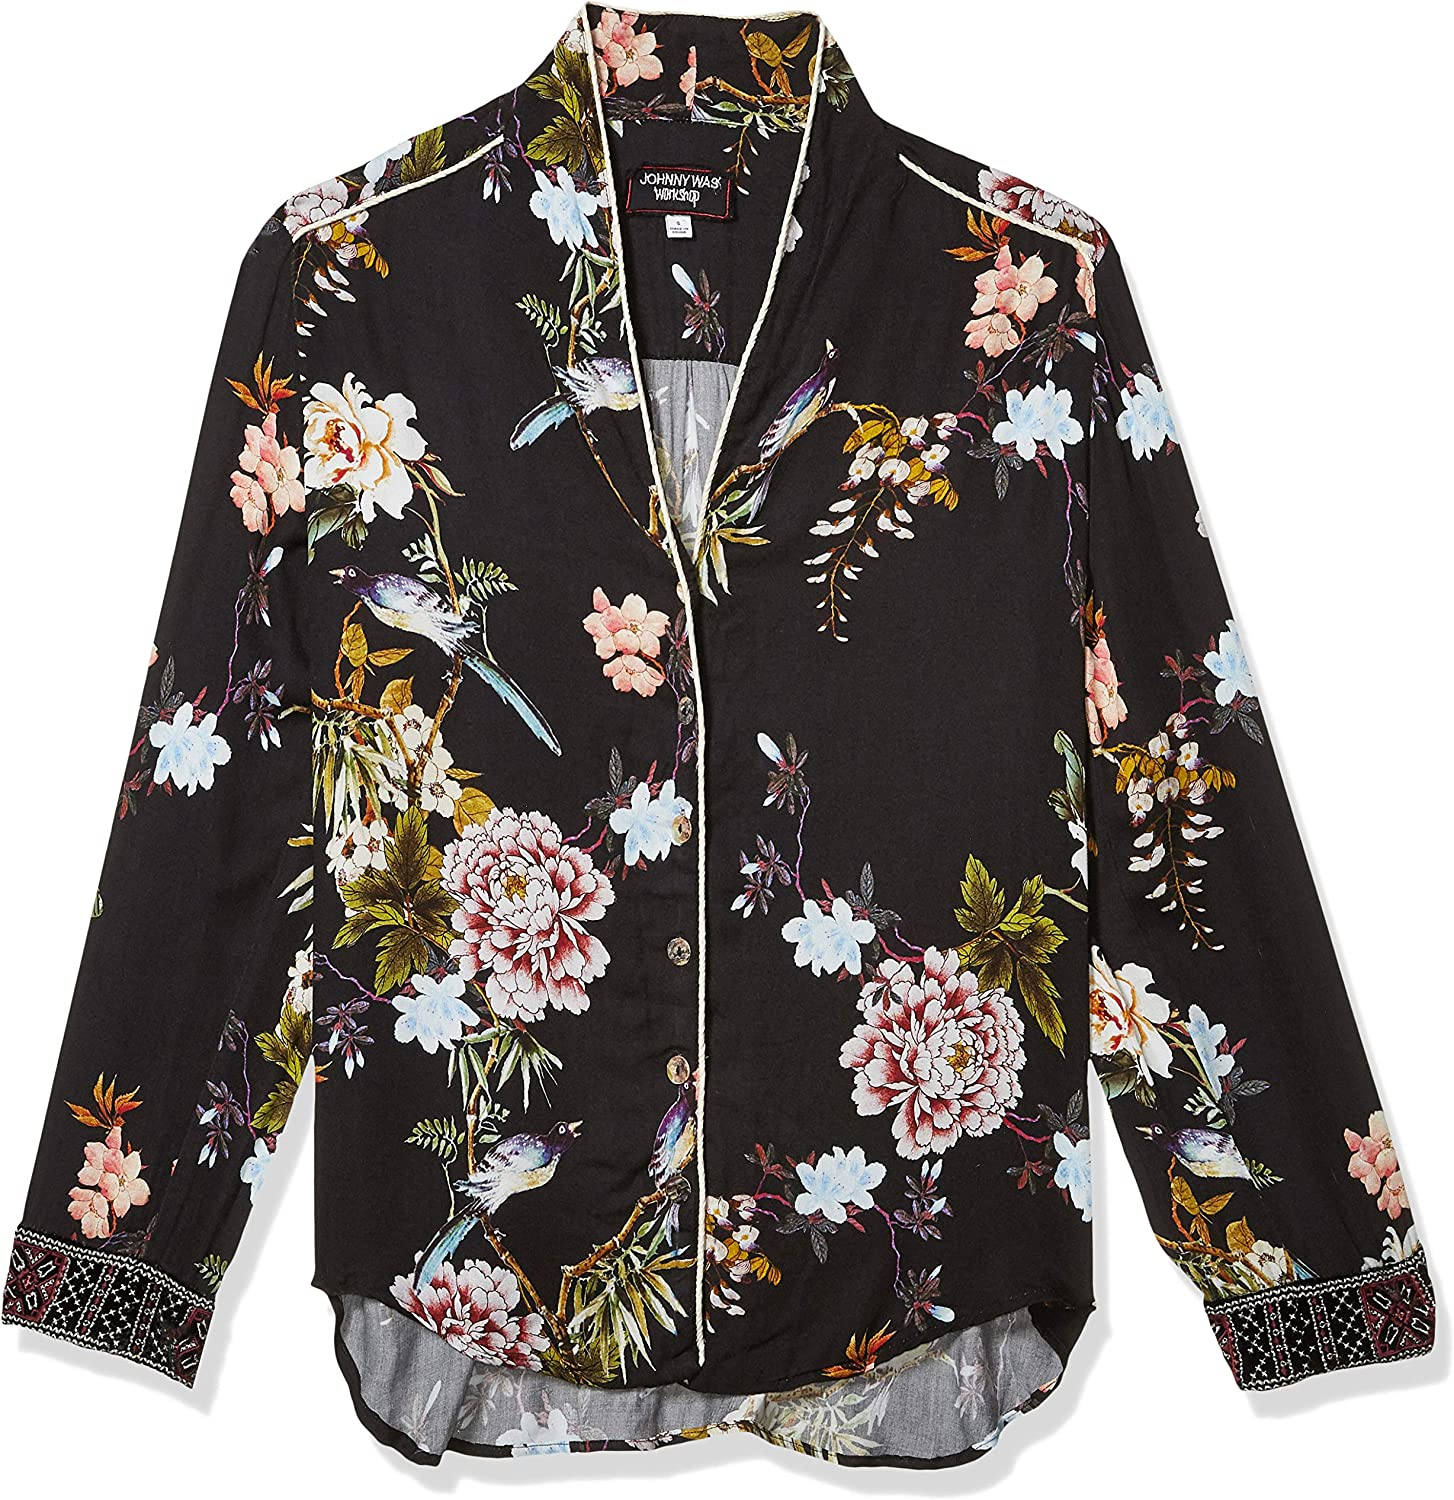 3J Workshop by Johnny Was Women's Green Printed Button Down Shirt Blouse Multi